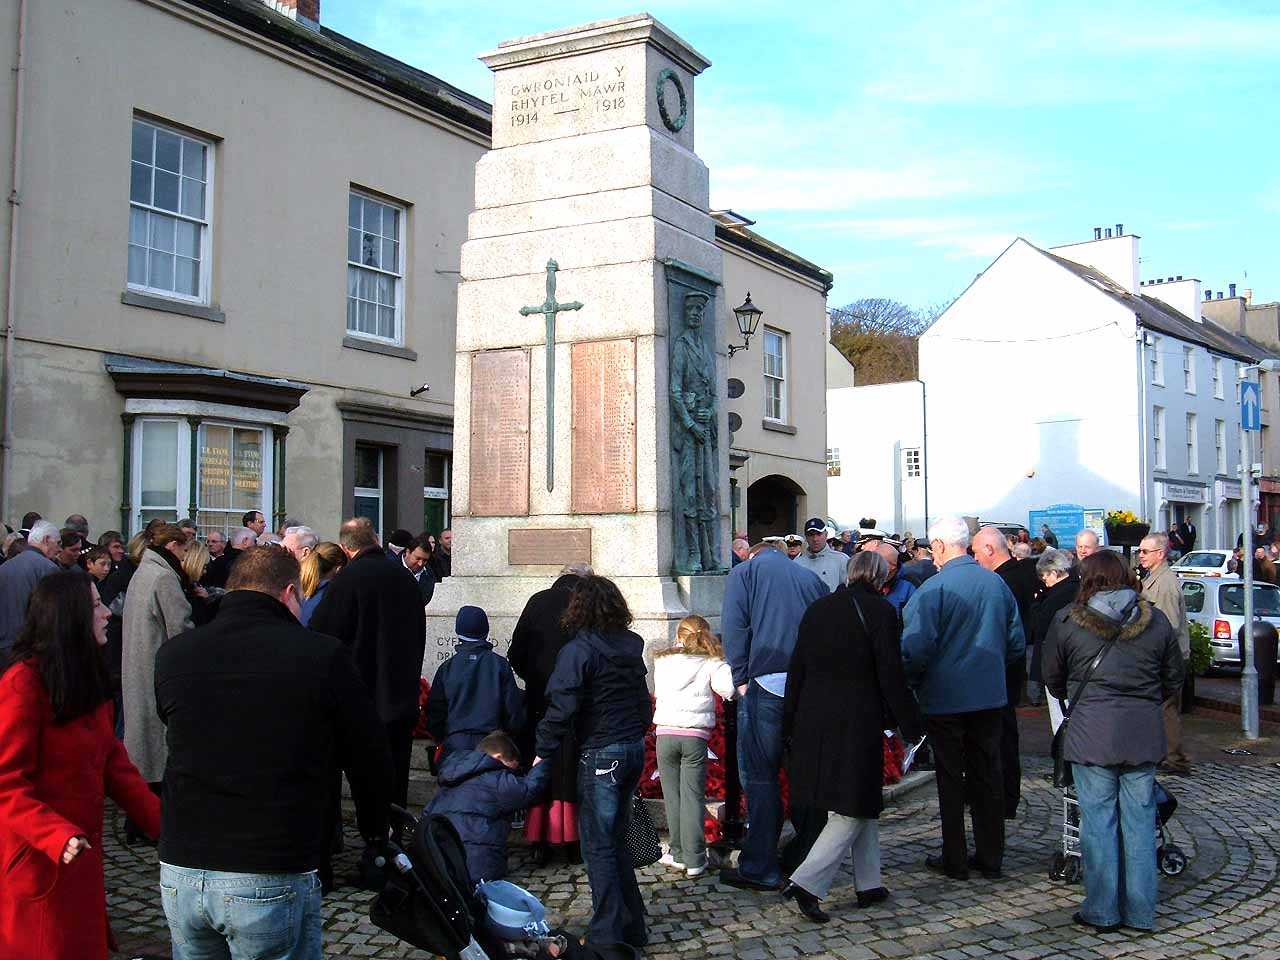 Anglesey, Holyhead, Remembrance Sunday 2006 - People looking at the wreaths